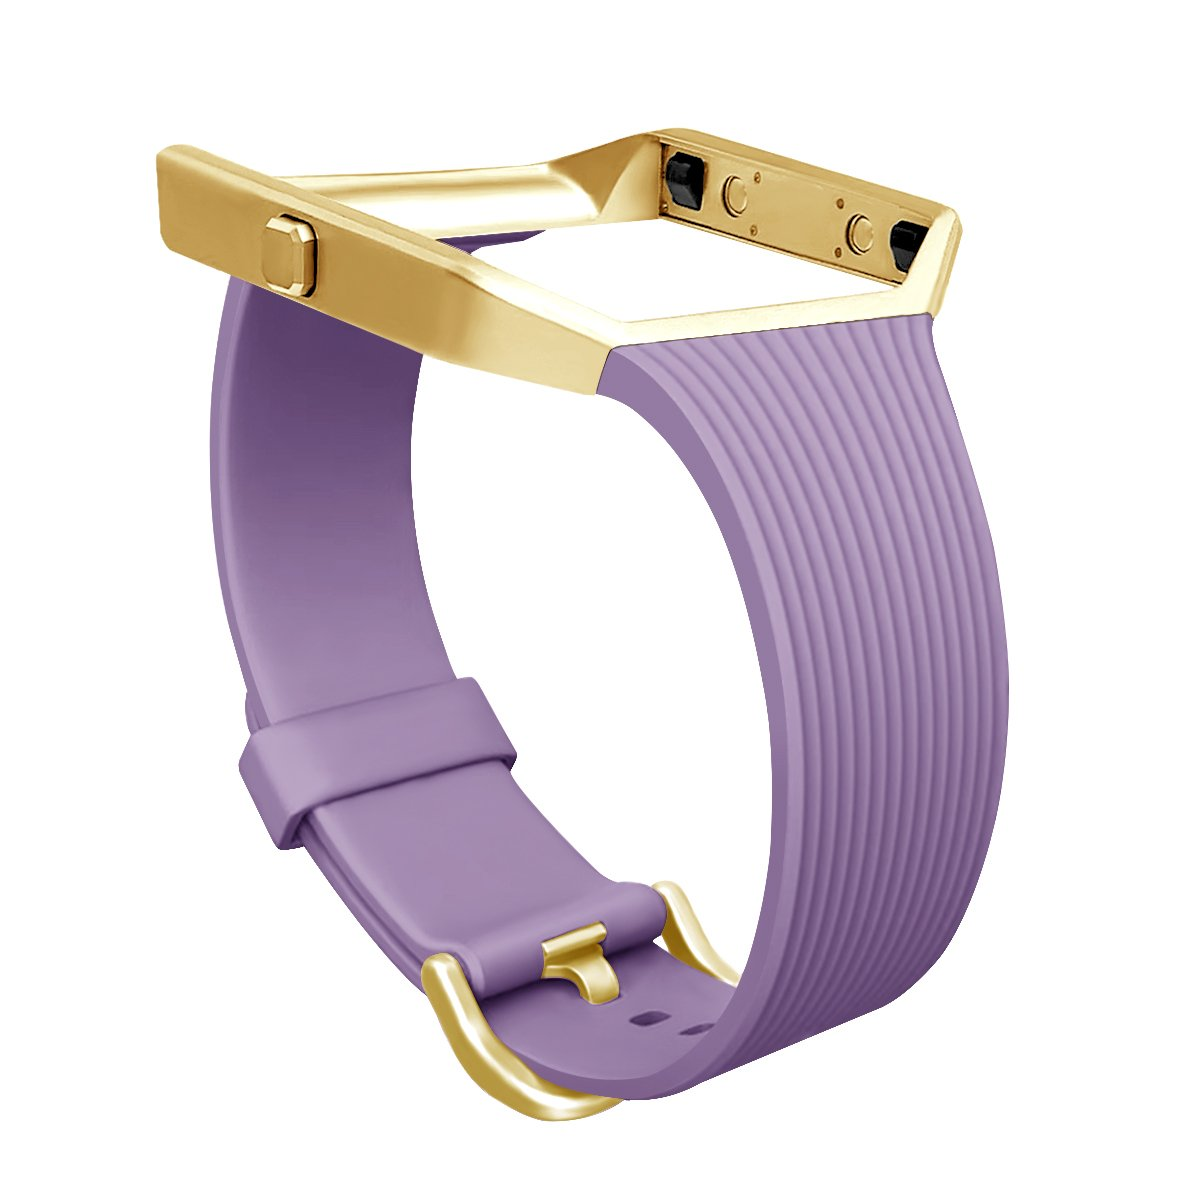 GHIJKL for Fitbit Blazeスリムバンド、Tpu交換用スポーツストラップwith Frame for Fitbit Blaze Smart Fitness Watch, Large Small Violet with Gold Frame Violet with Gold Frame B076RNXK4N